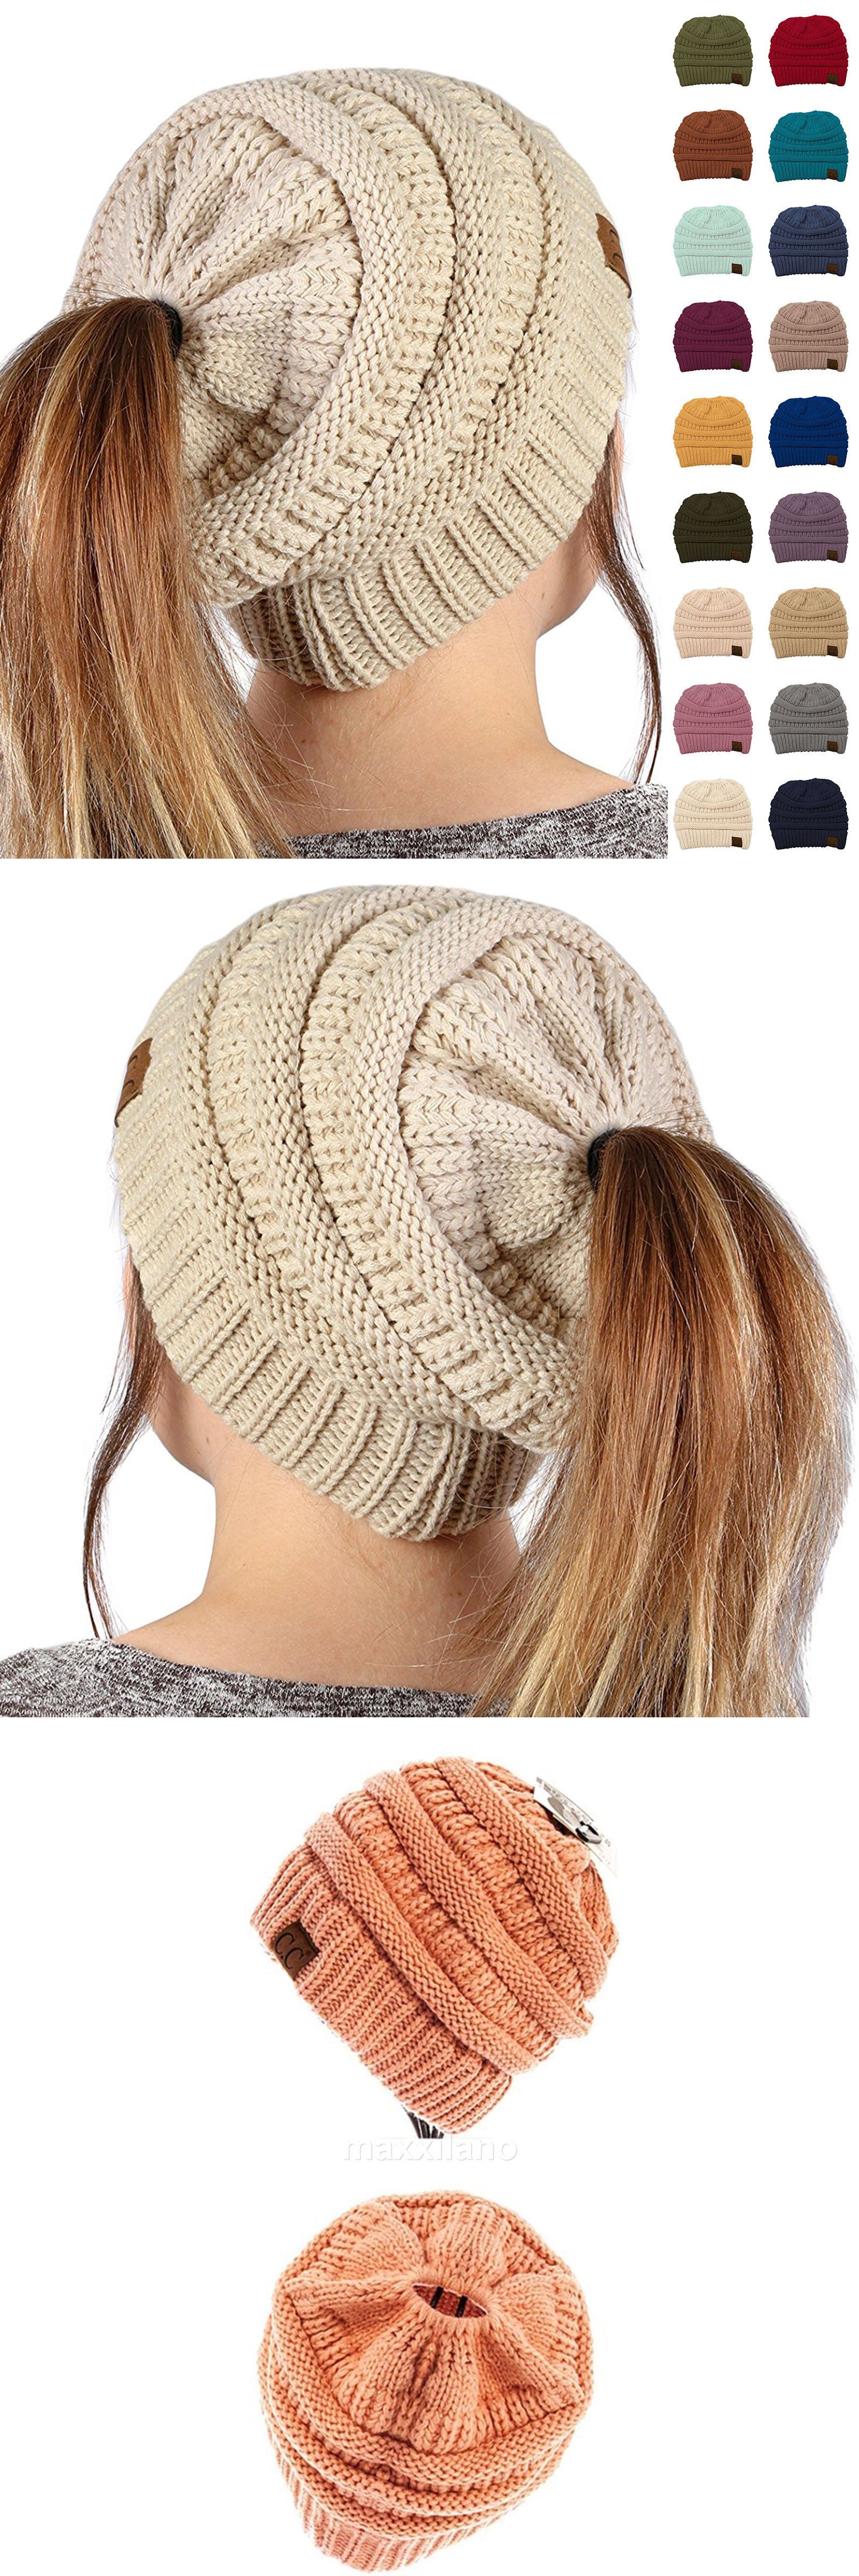 47e1989a3ea Hats 45230  Womens Cc Beanie Tail Messy High Bun Ponytail Hat Knit Winter  Cap Hole Slouchy -  BUY IT NOW ONLY   13.98 on  eBay  womens  beanie  messy  ...